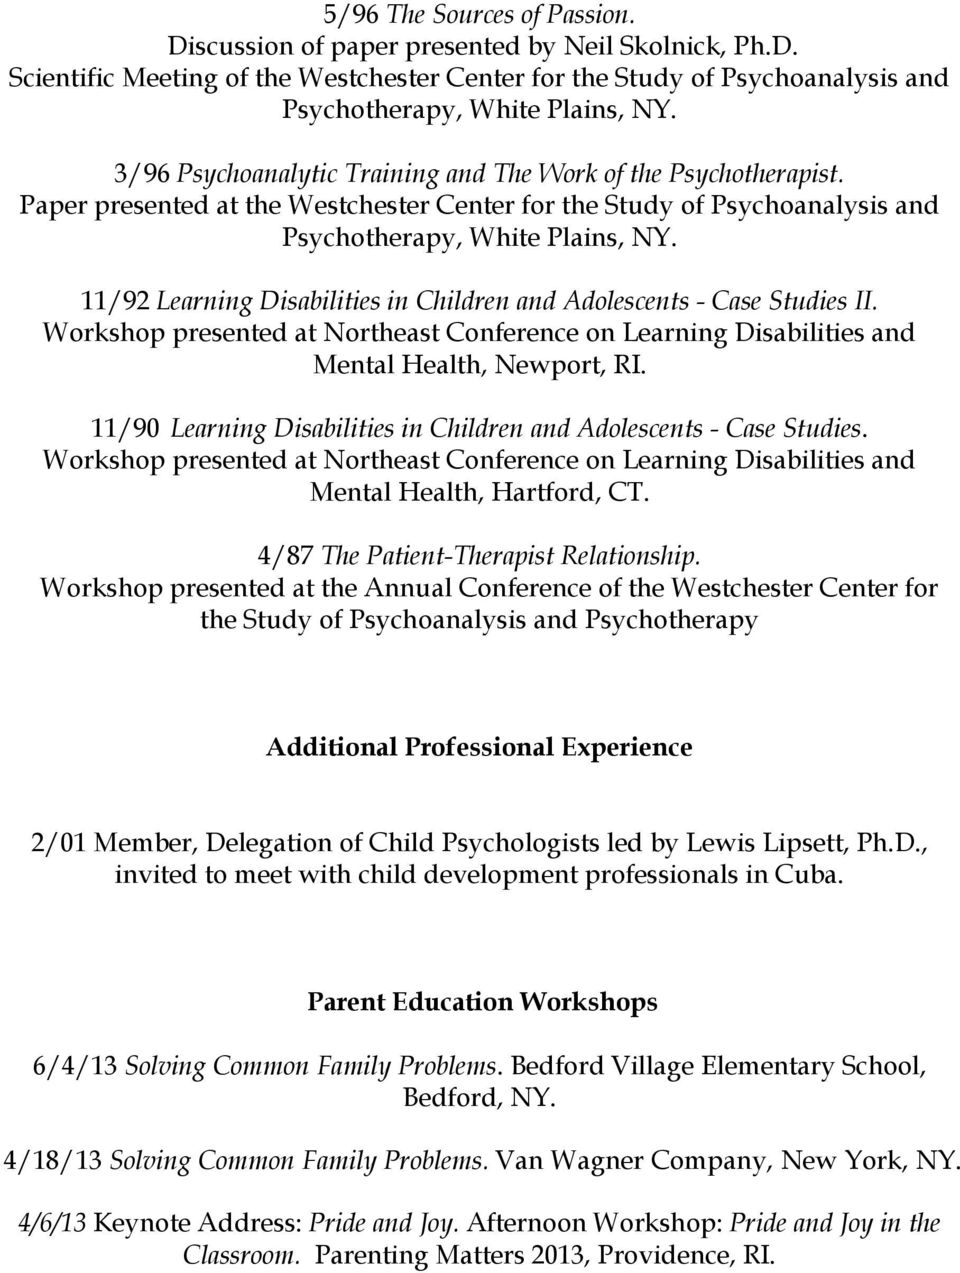 11/92 Learning Disabilities in Children and Adolescents - Case Studies II. Workshop presented at Northeast Conference on Learning Disabilities and Mental Health, Newport, RI.